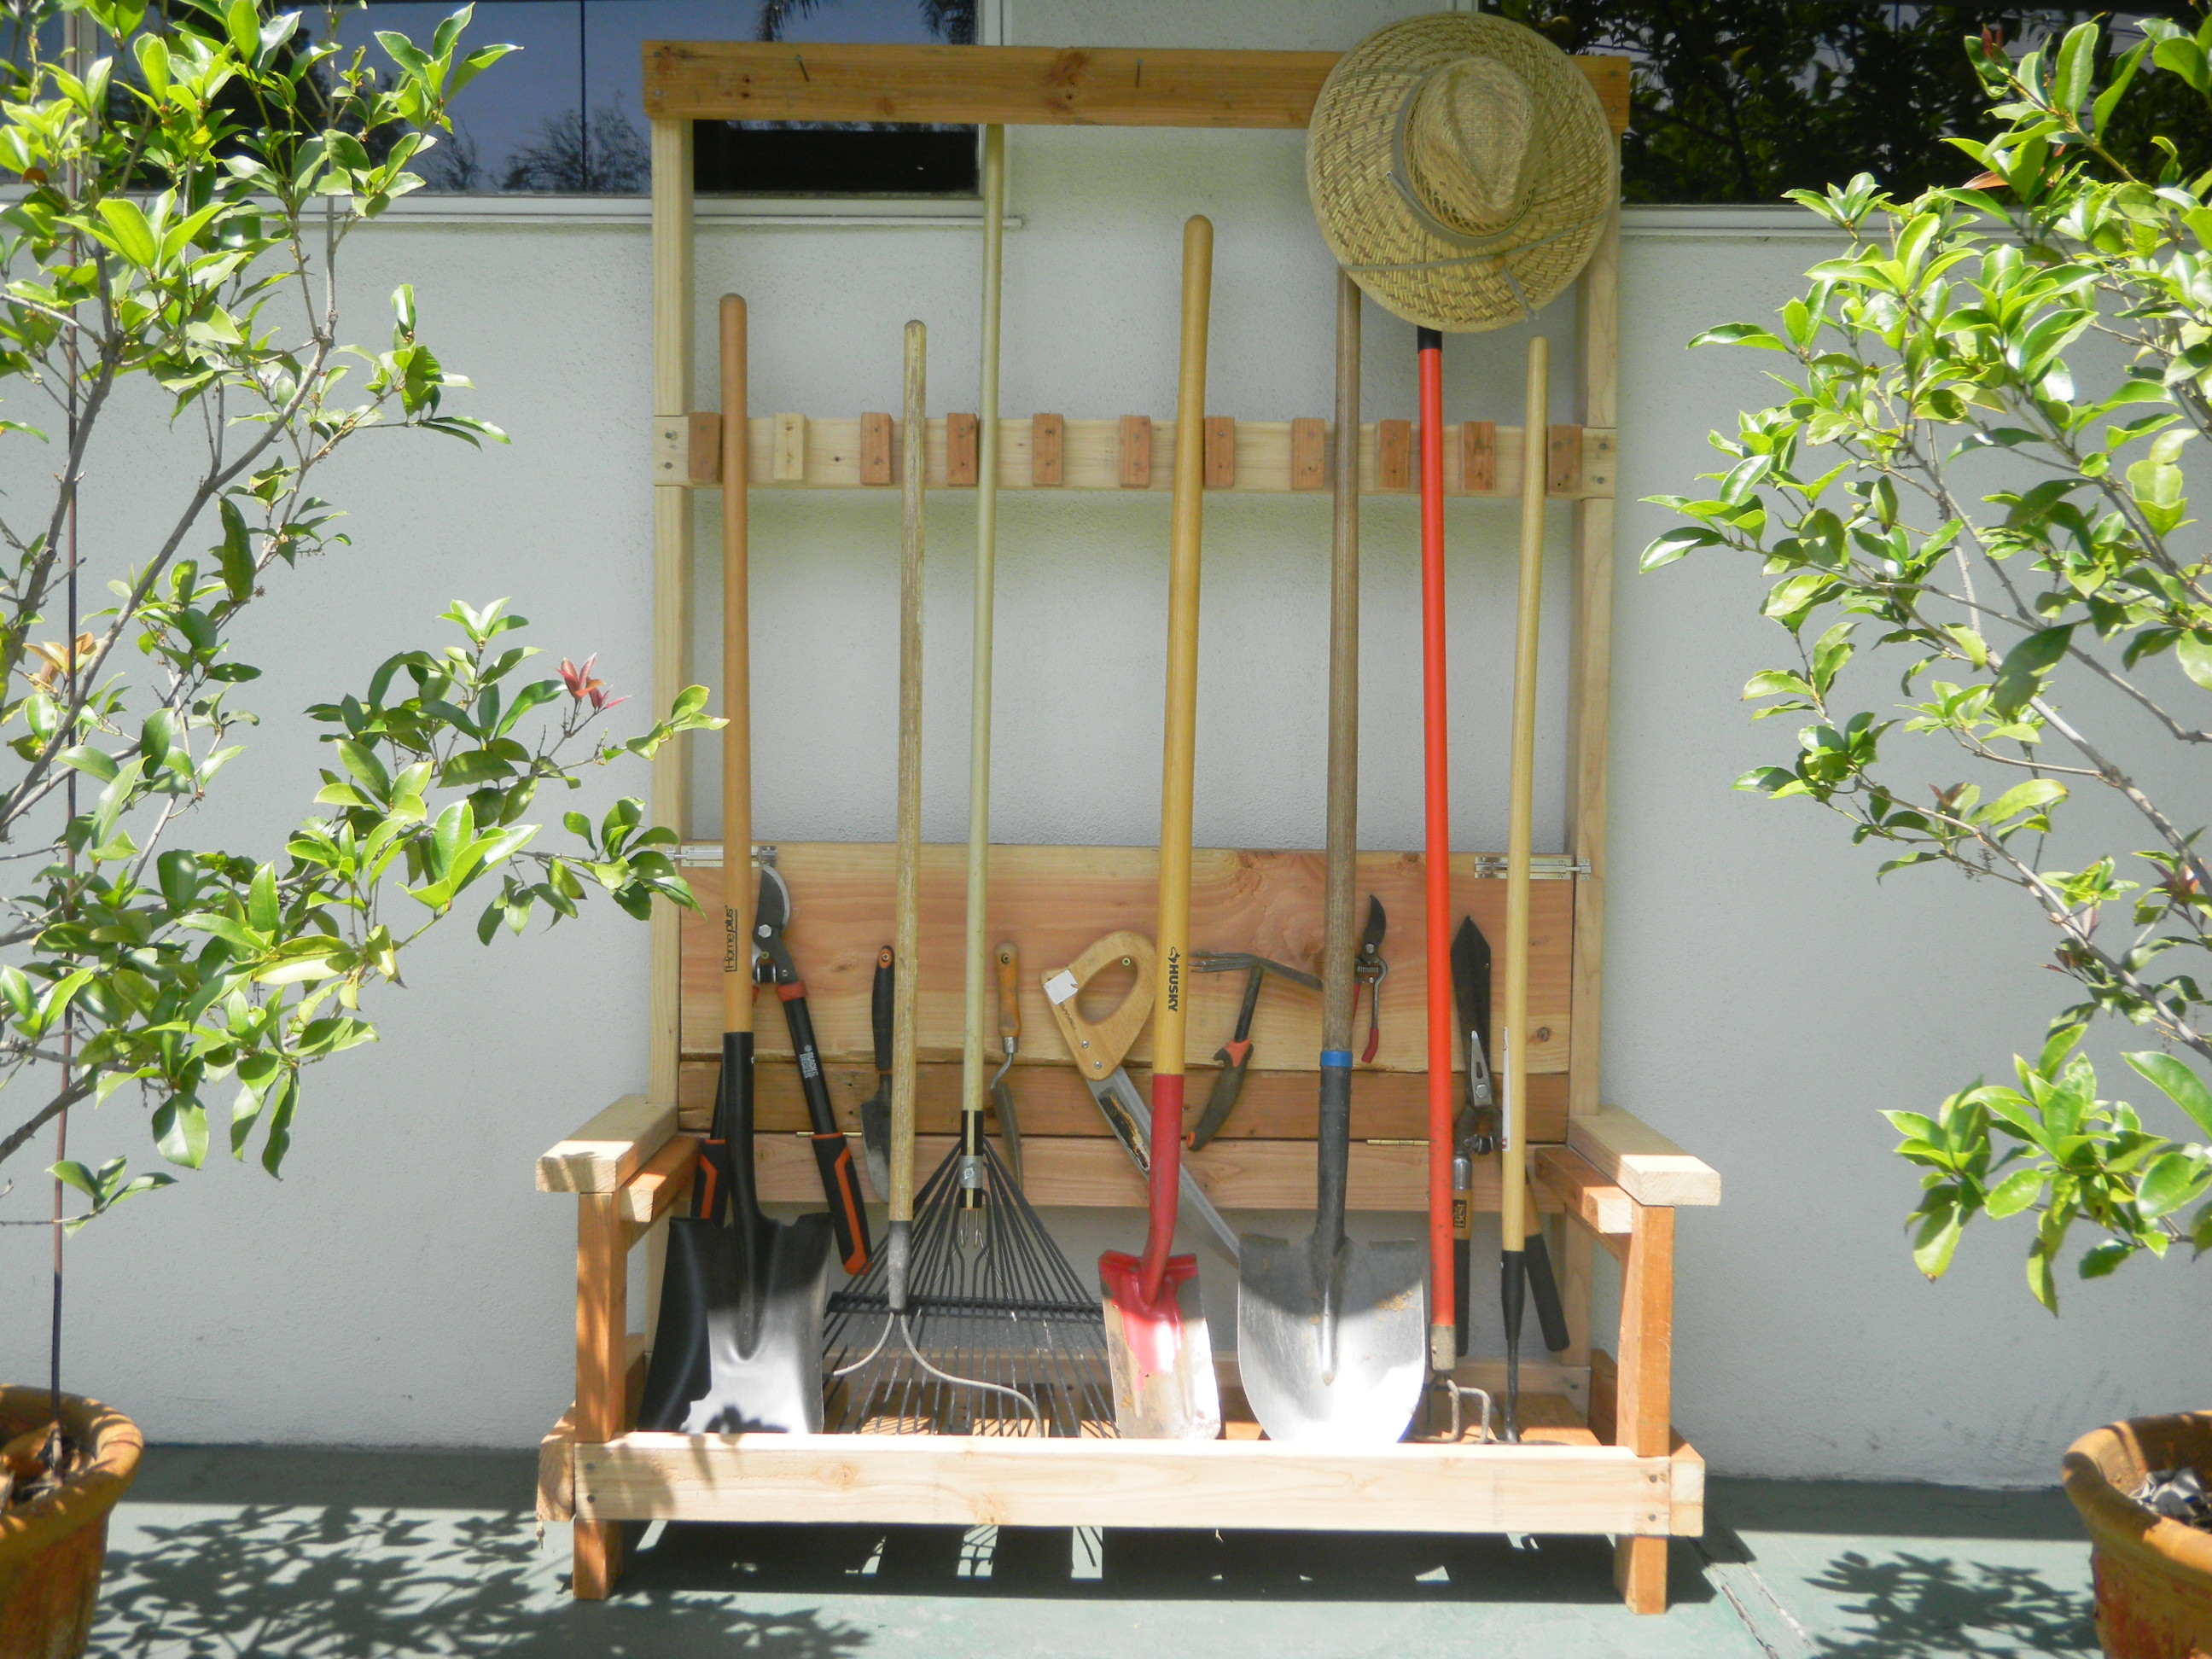 Garden Tool Rack with foldable bench